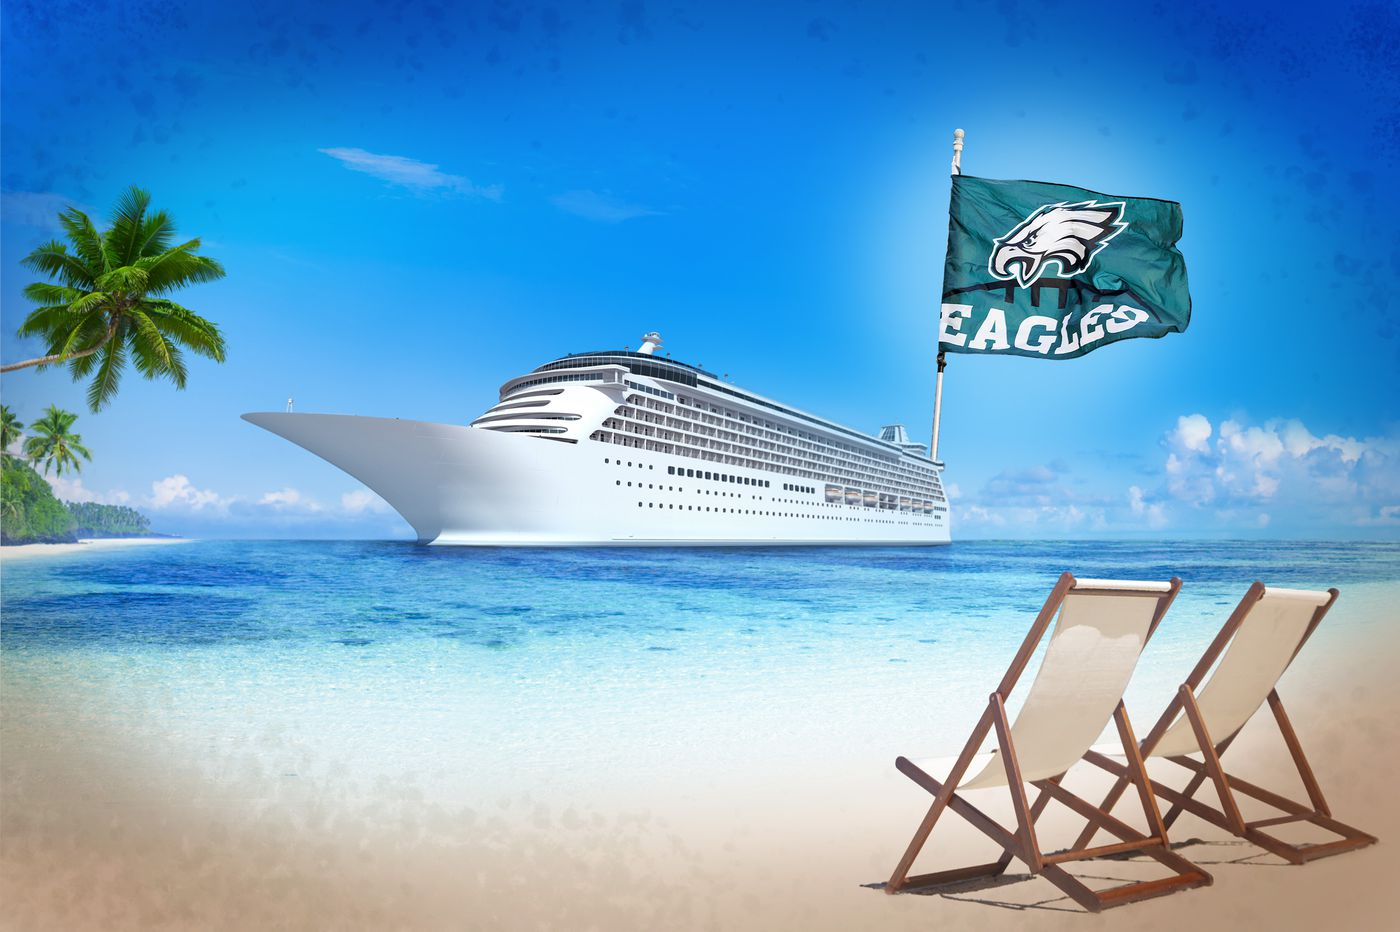 The Eagles fan cruise: Slam picklebacks, stay hydrated | Satire